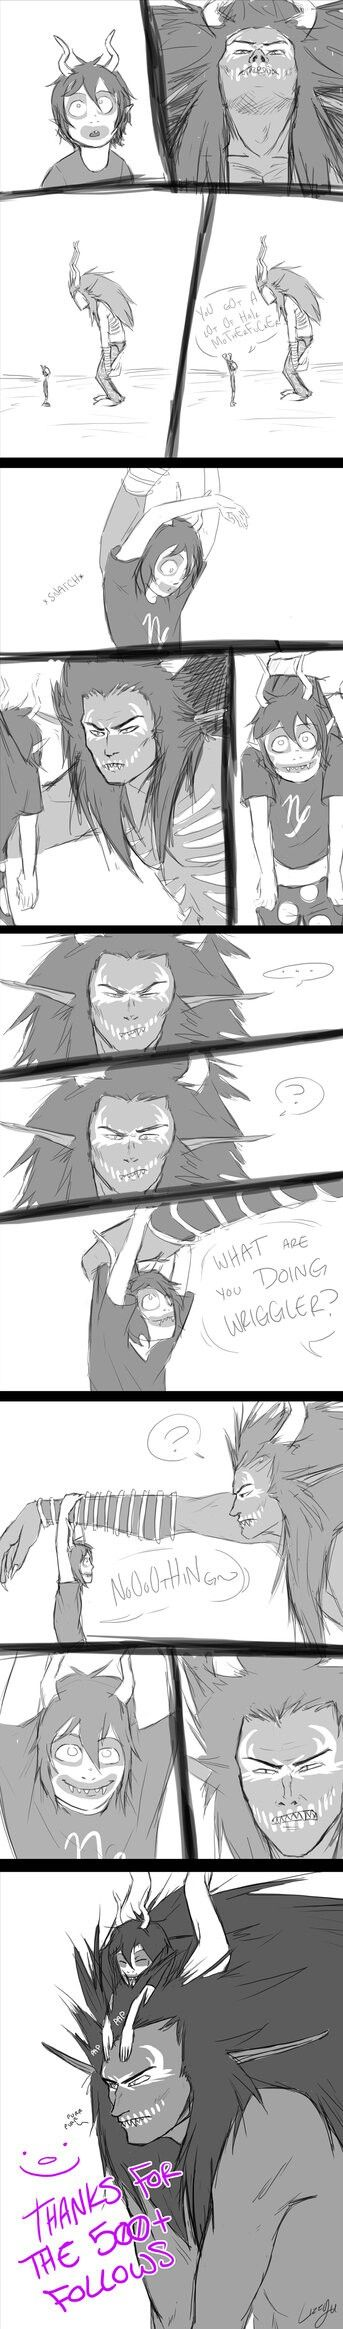 GHB and gamzee. <<< PURR PURR. GHB PURR-PURRED.